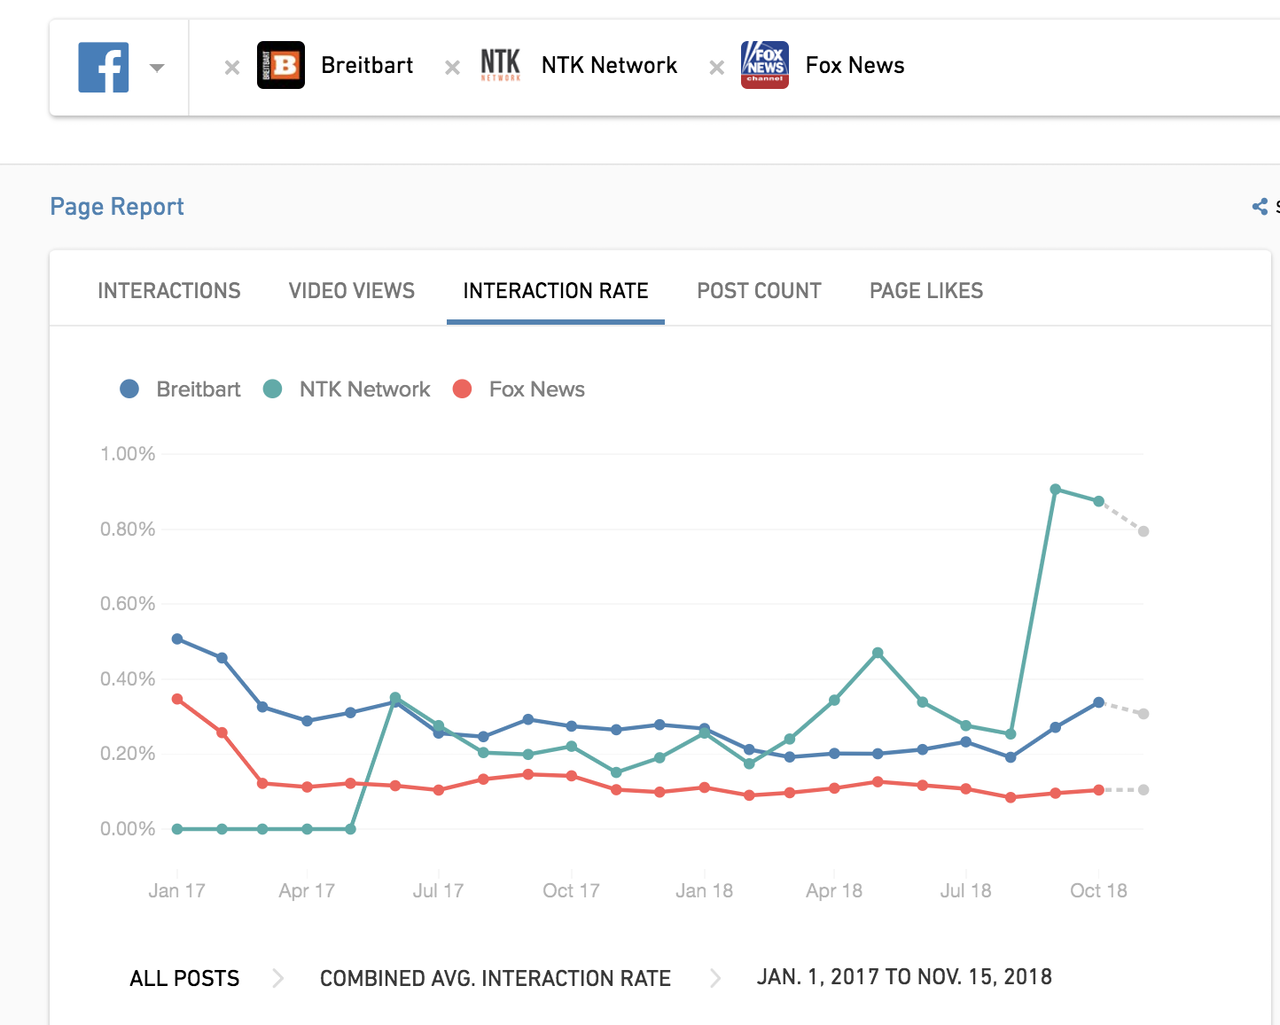 Other more established conservative outlets did not get the same sharp performance spike as NTK Network.